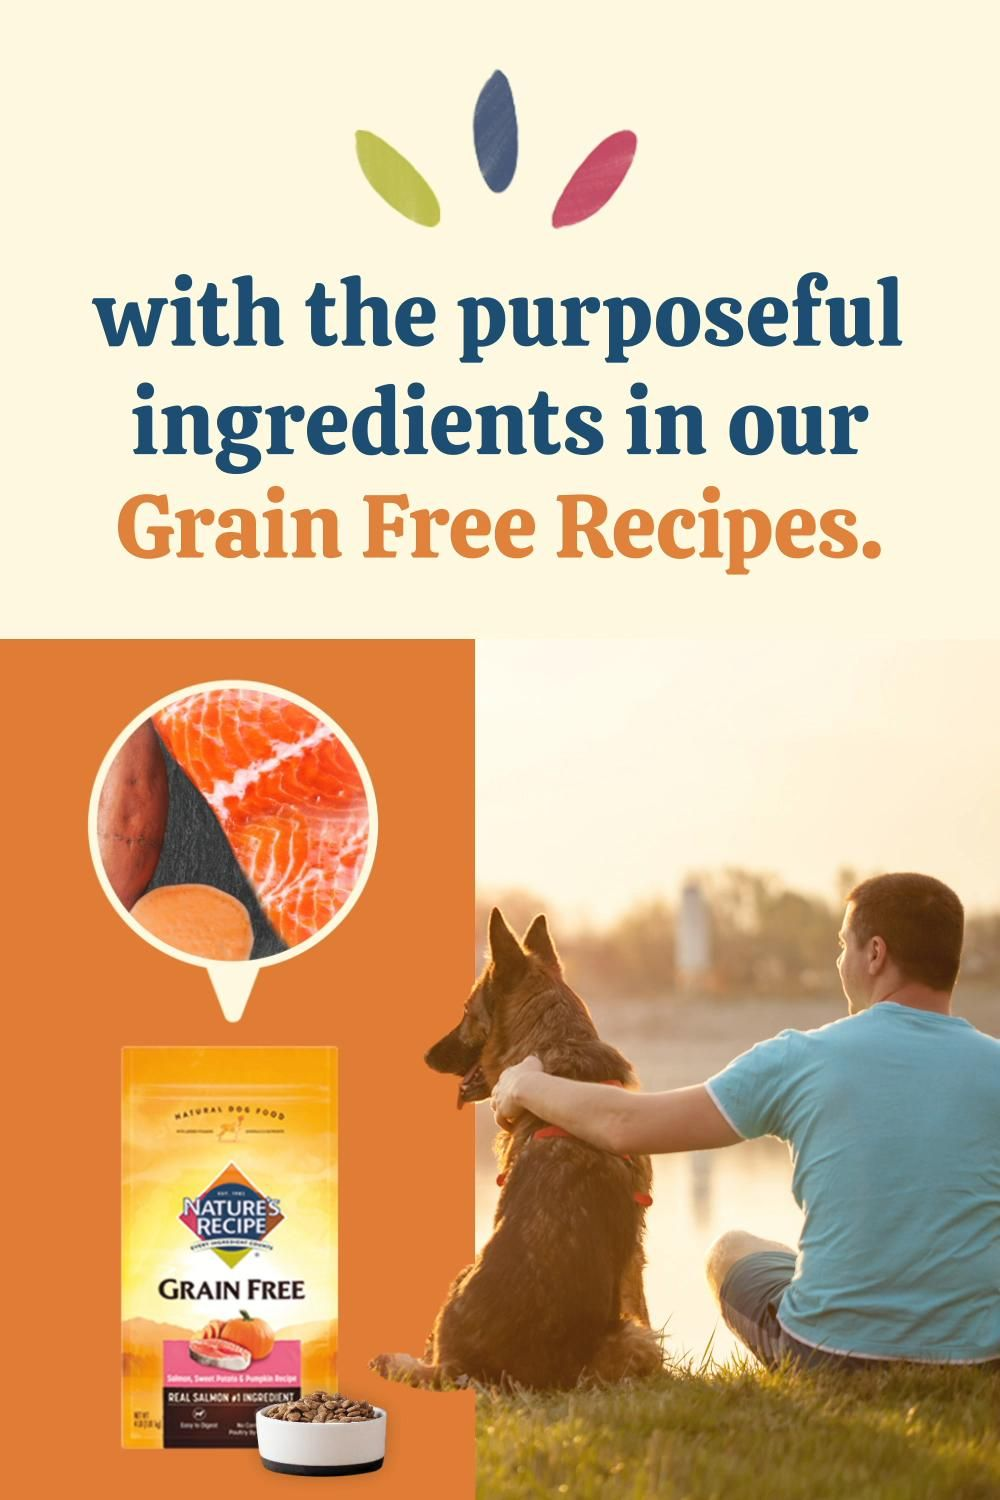 Nature S Recipe Uses Carefully Selected Ingredients To Support An Active Lifestyle For Your Dog Video In 2021 Salmon And Sweet Potato Natural Dog Food Your Dog